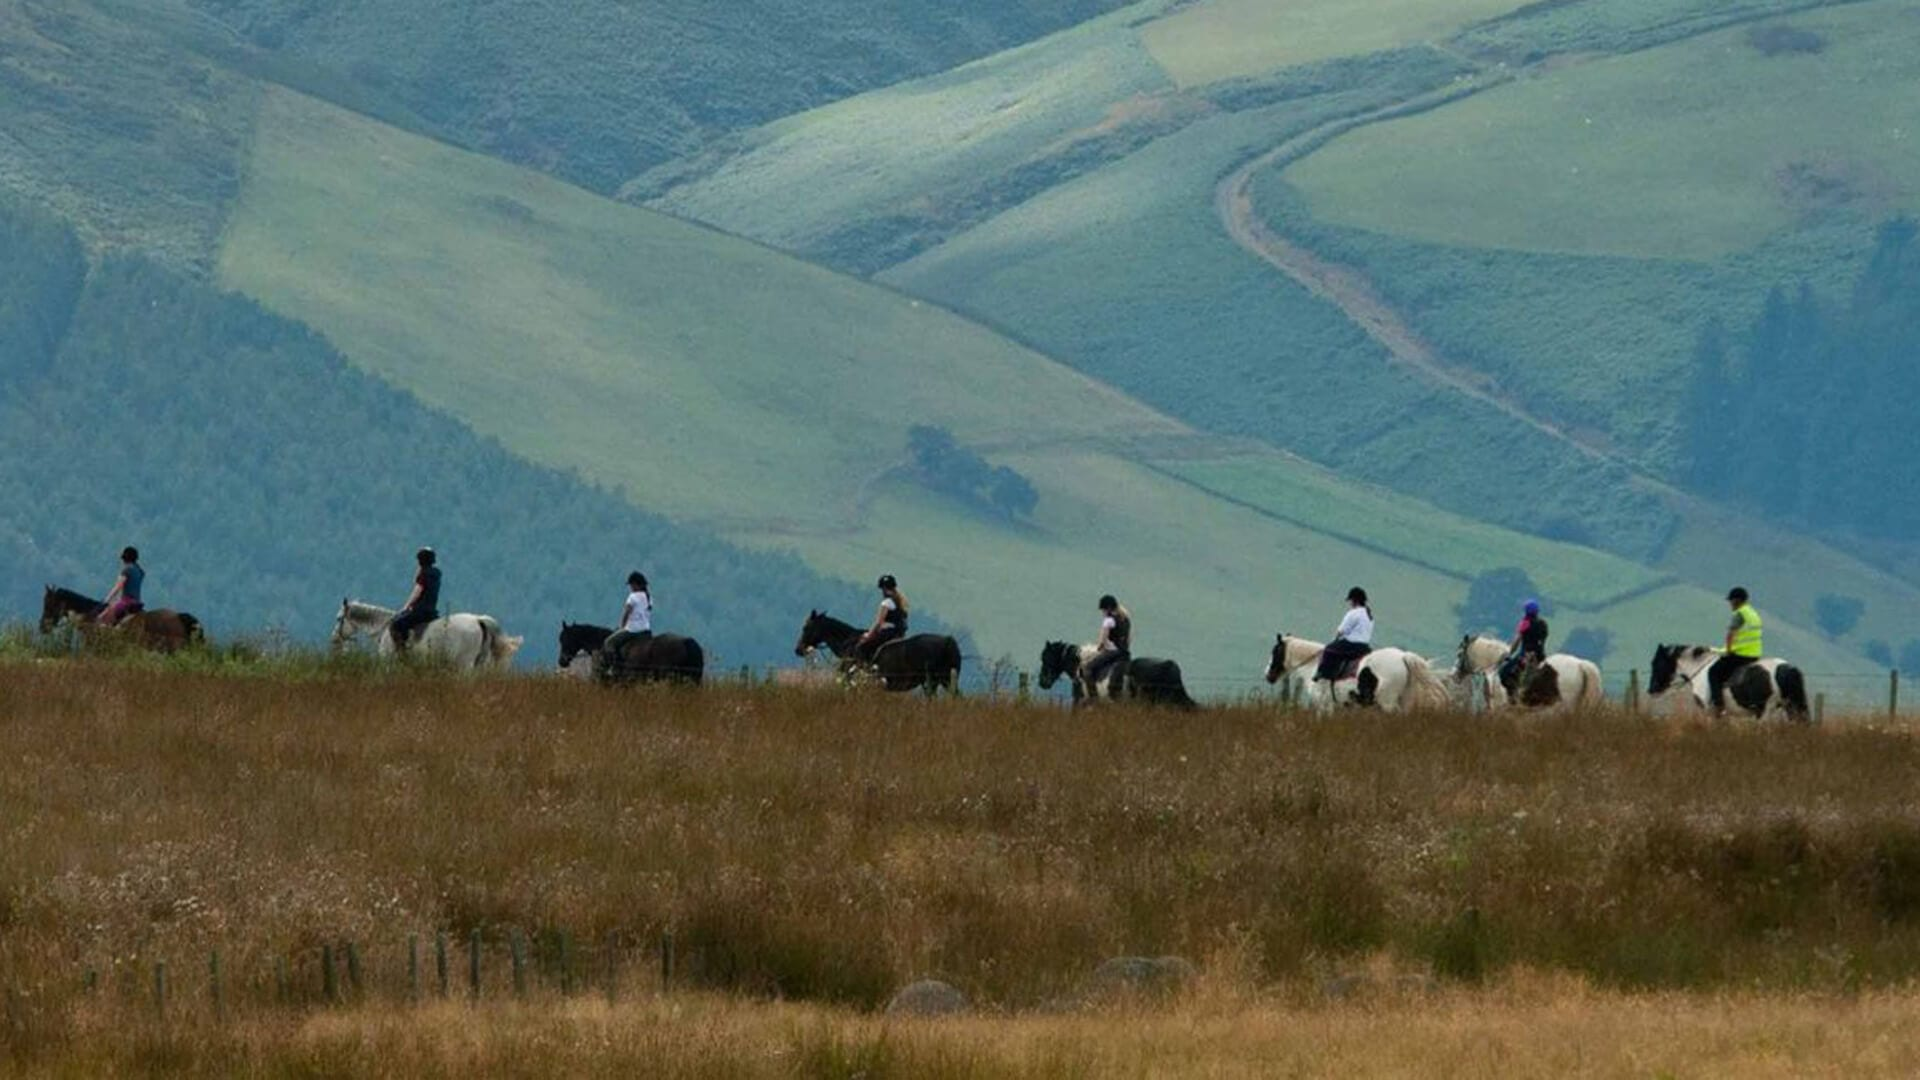 Horse riding holiday. Take your own horse on holiday with horse B & B, or join an organised trek.